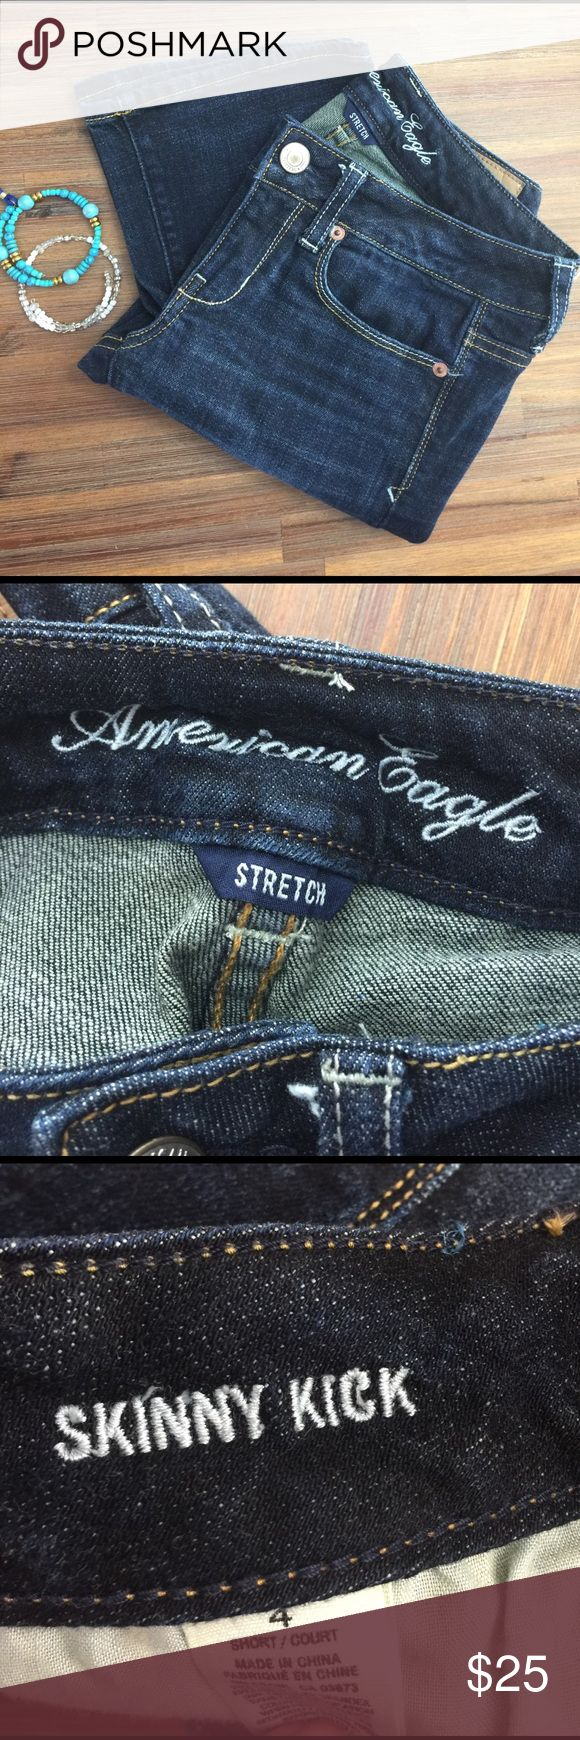 American Eagle Outfitters skinny kicks jeans American Eagle Outfitters skinny kicks short jeans. Perfect condition & ready to wear. American Eagle Outfitters Jeans Flare & Wide Leg